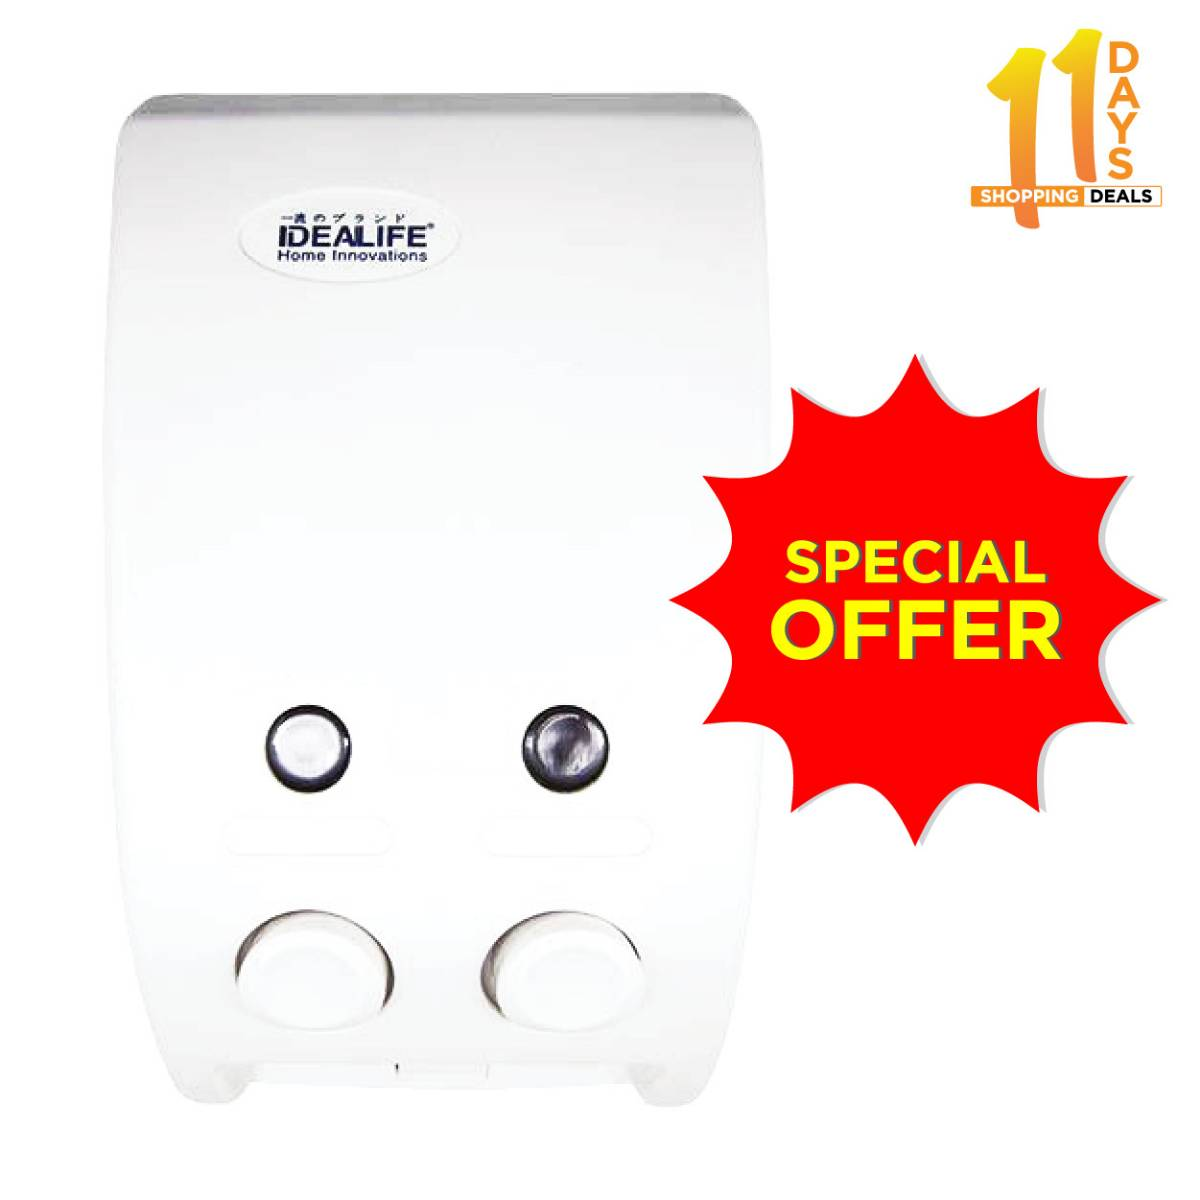 [promo Fbo 11.11] Idealife - Liquid Dispenser (2 Buttons) - Tempat Sabun Cair 2 Tabung - I...